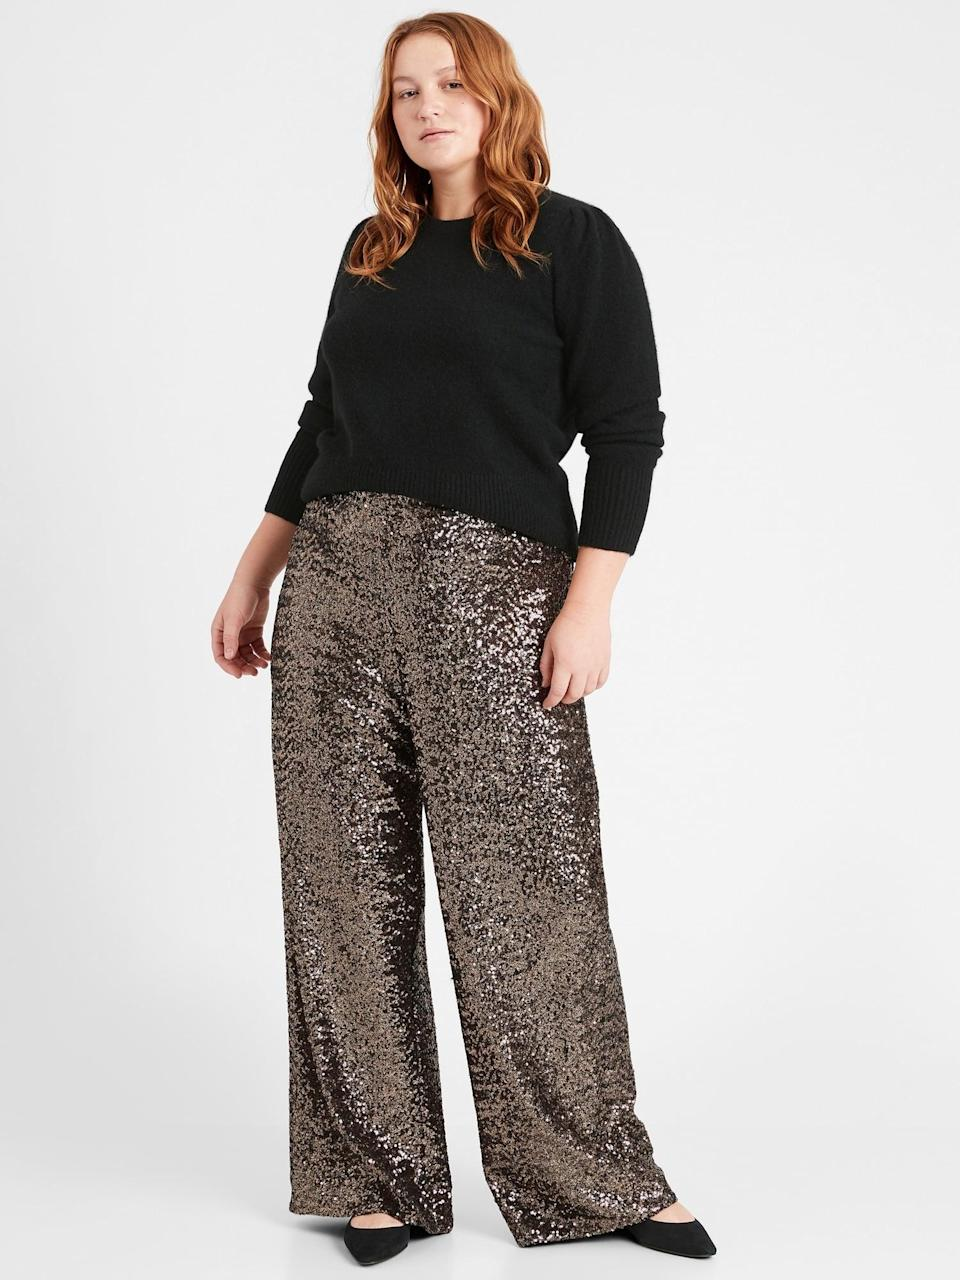 """<p>Have you ever tried wearing sequins during the day? These <span>Banana Republic High-Rise Wide-Leg Sequin Pant</span> ($75, originally $110) are in <i>instant</i> mood lifter. Pair them with a pair of your favorite low-top white sneakers and turtle neck for a cool look for errands. Check out the reviews """"They are sparkly and I bought them to use as joggers on miserable days."""" These seem to be perfect to cheer you up!</p>"""